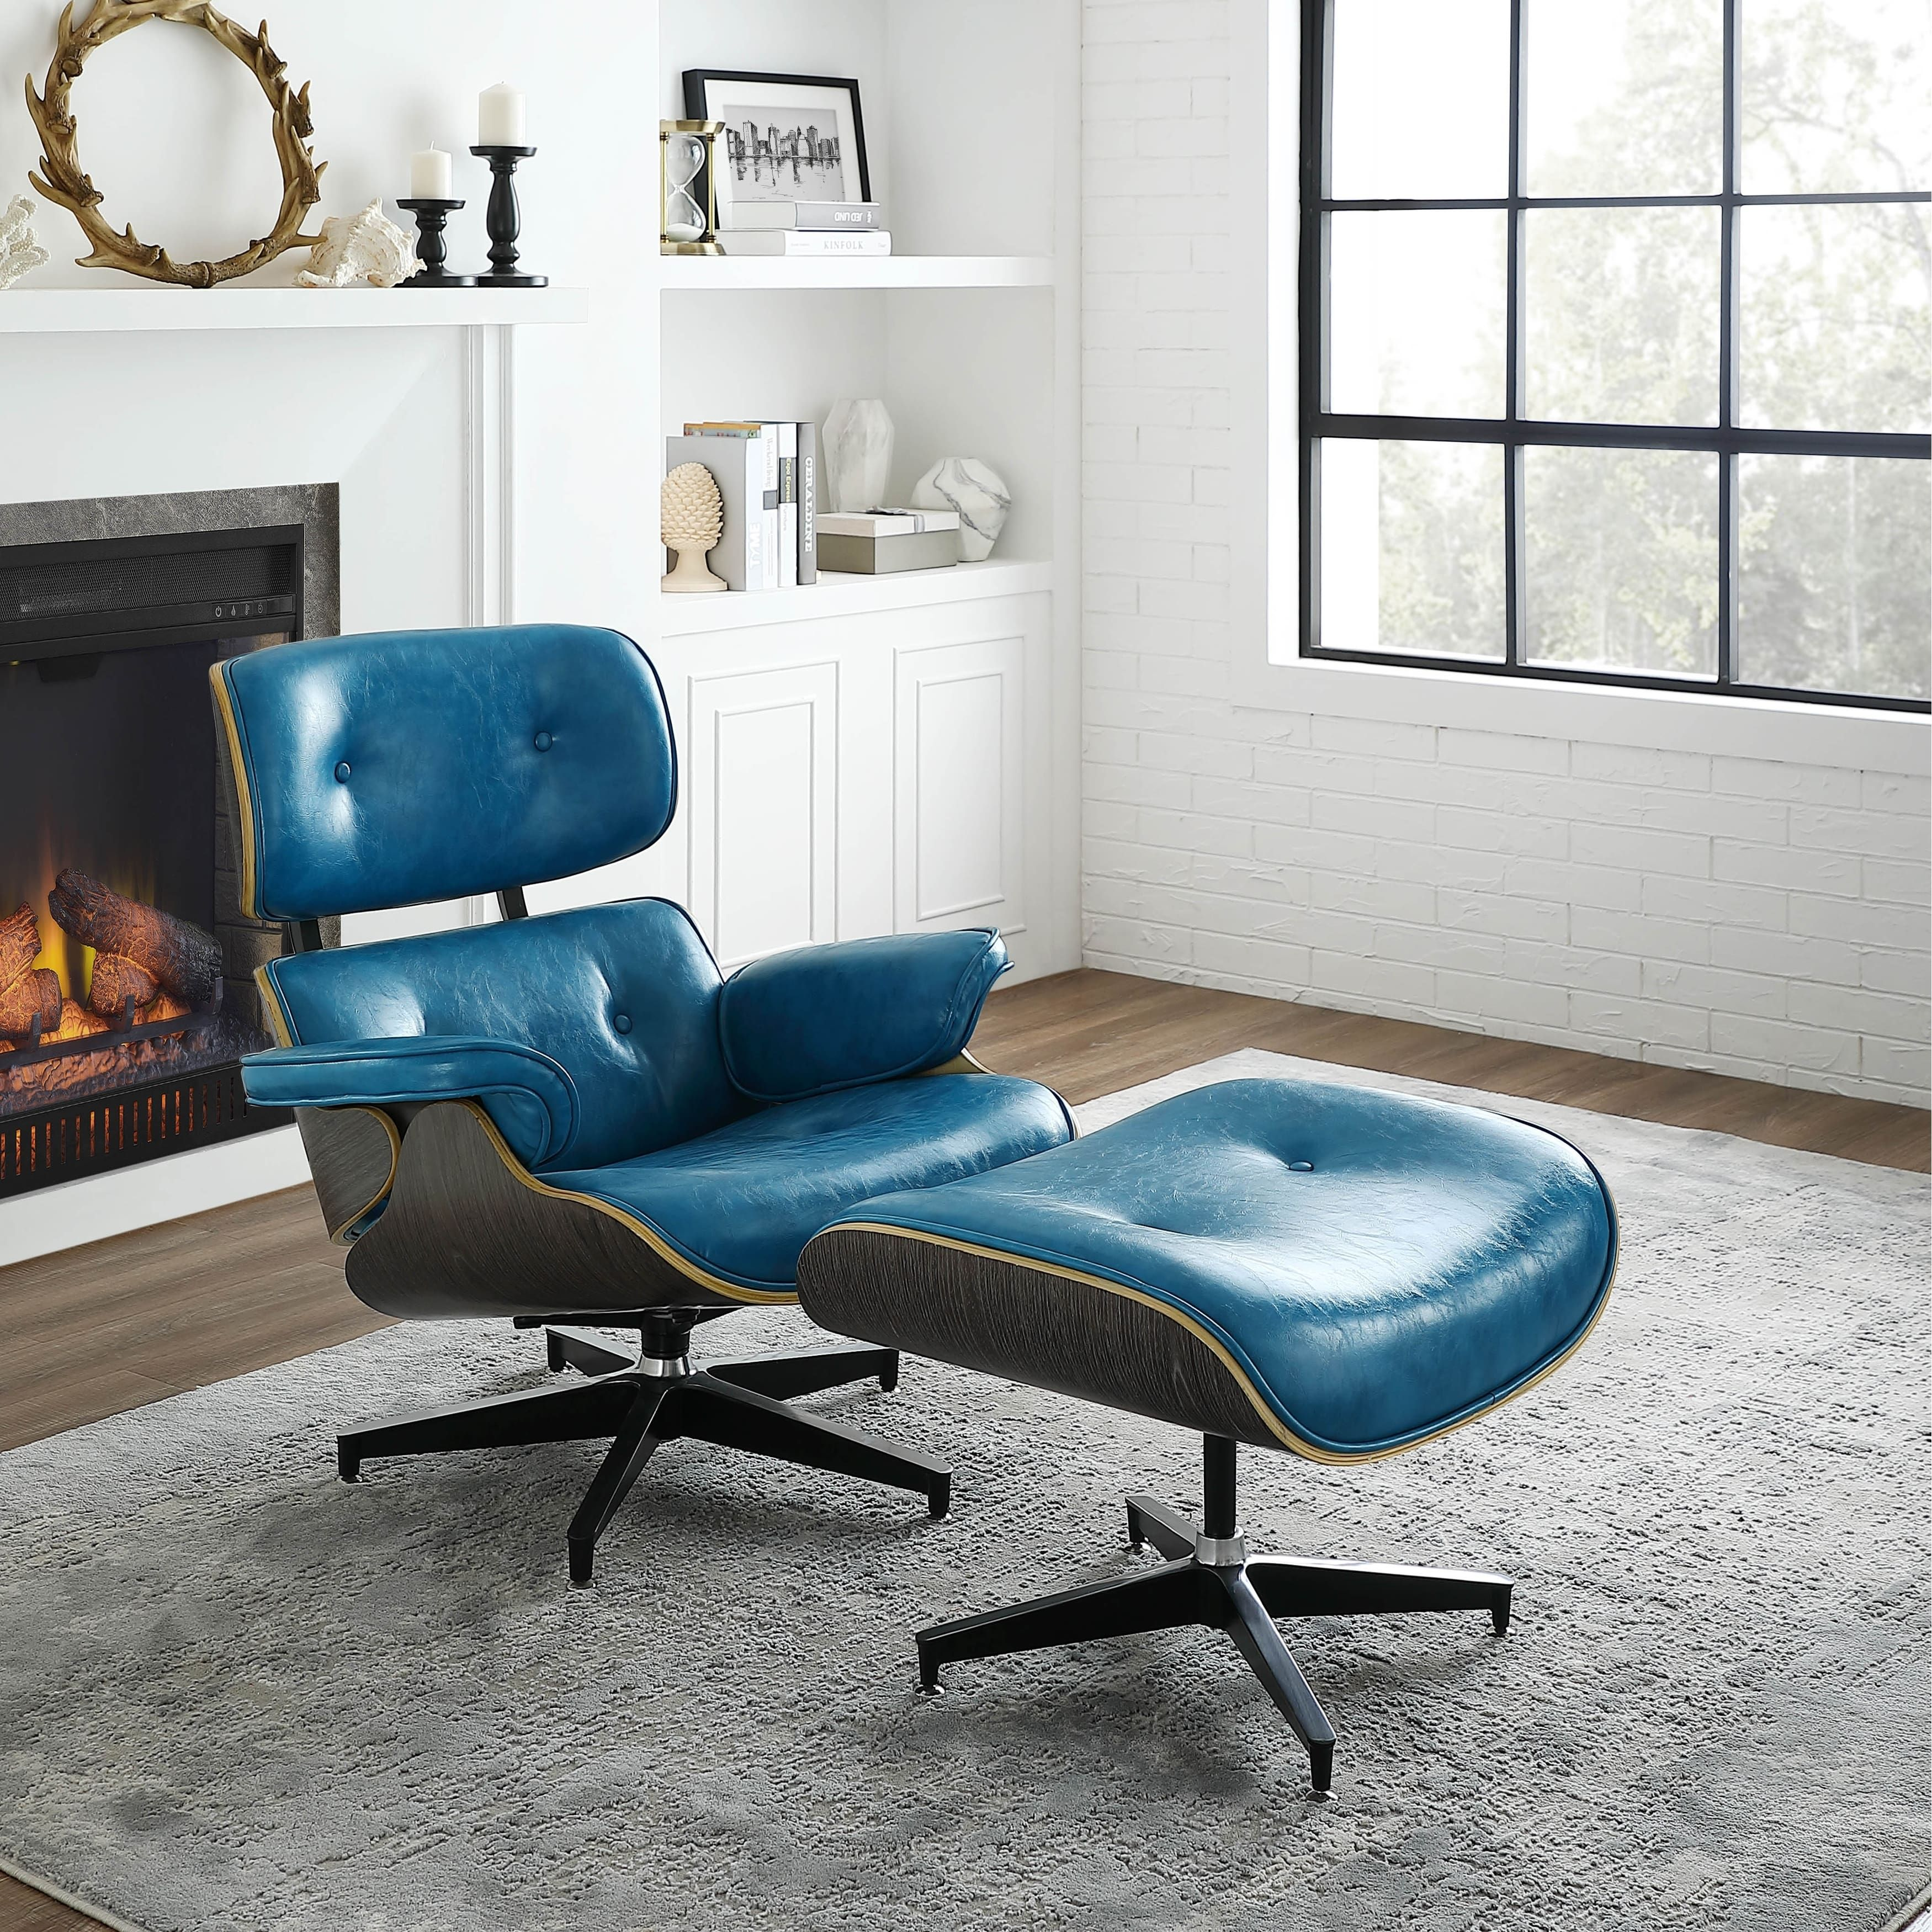 Corvus Neville Mid Century Lounge Chair Set With Ottoman Mid Century Lounge Chairs Cheap Living Room Sets Living Room Chairs